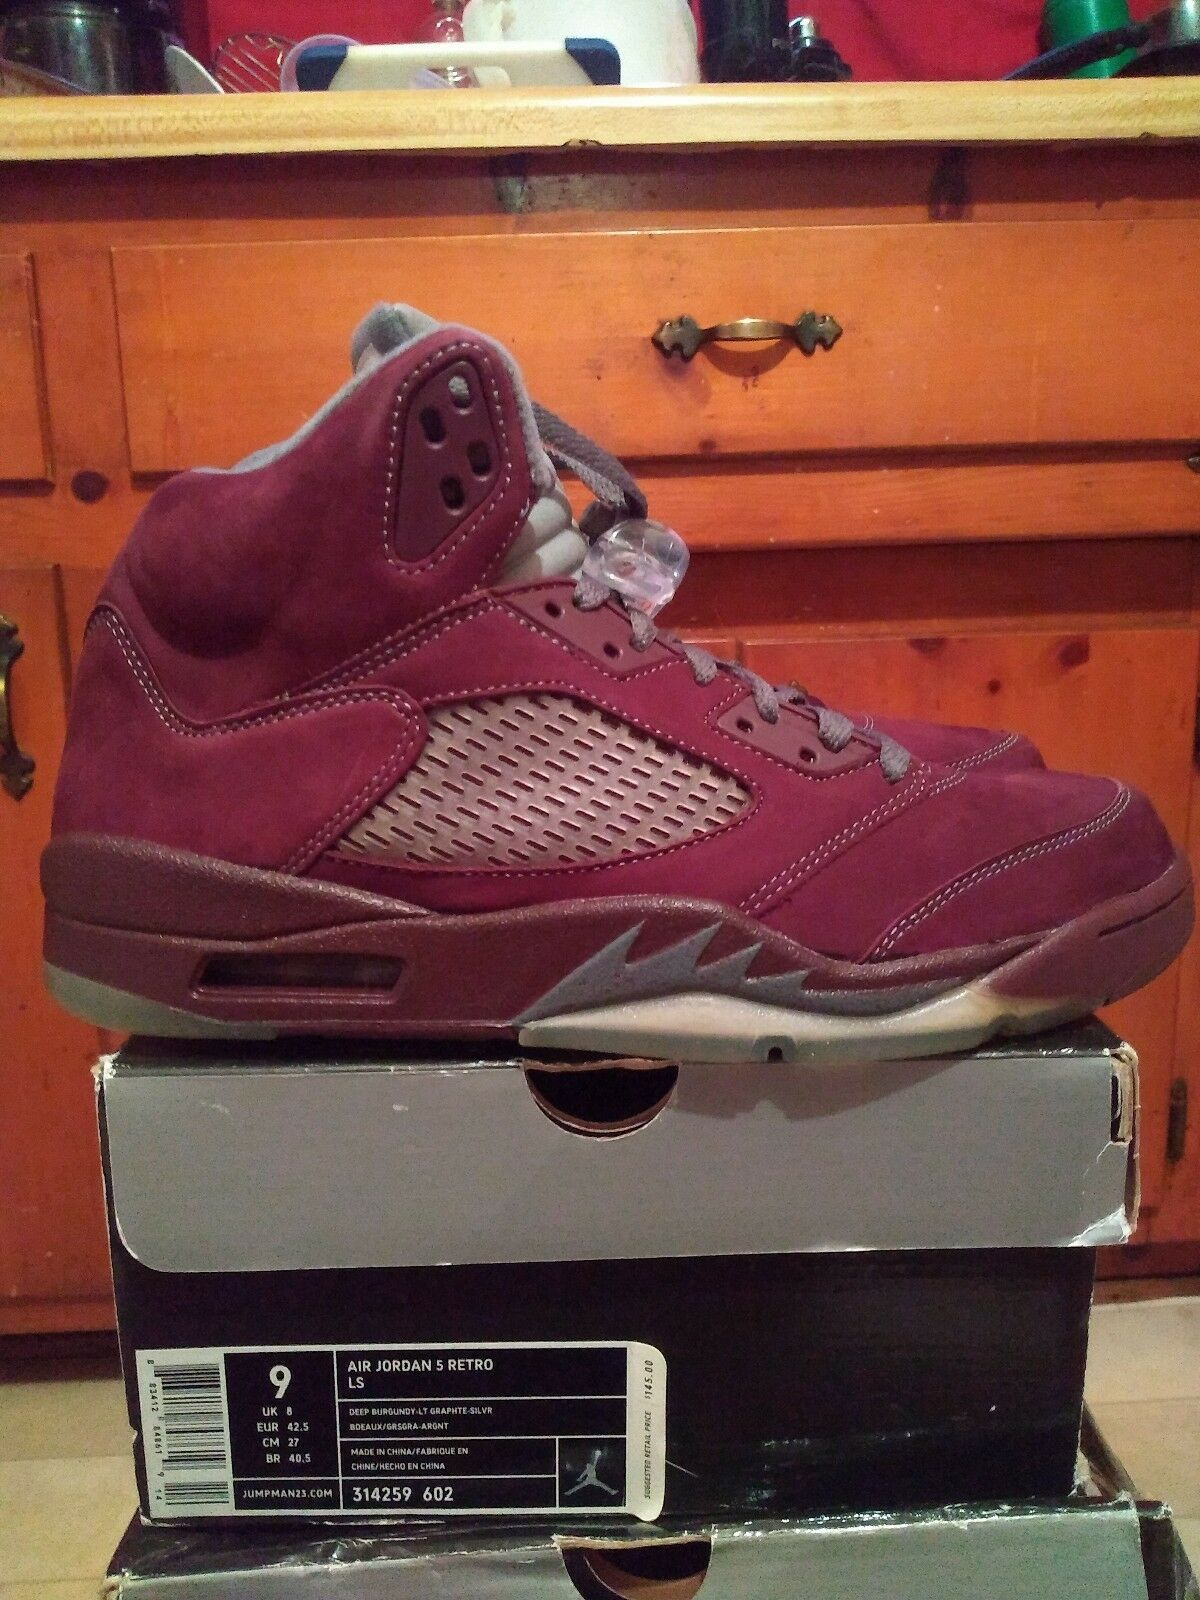 Jordan 5 Burgundy Dimensione 9 DS